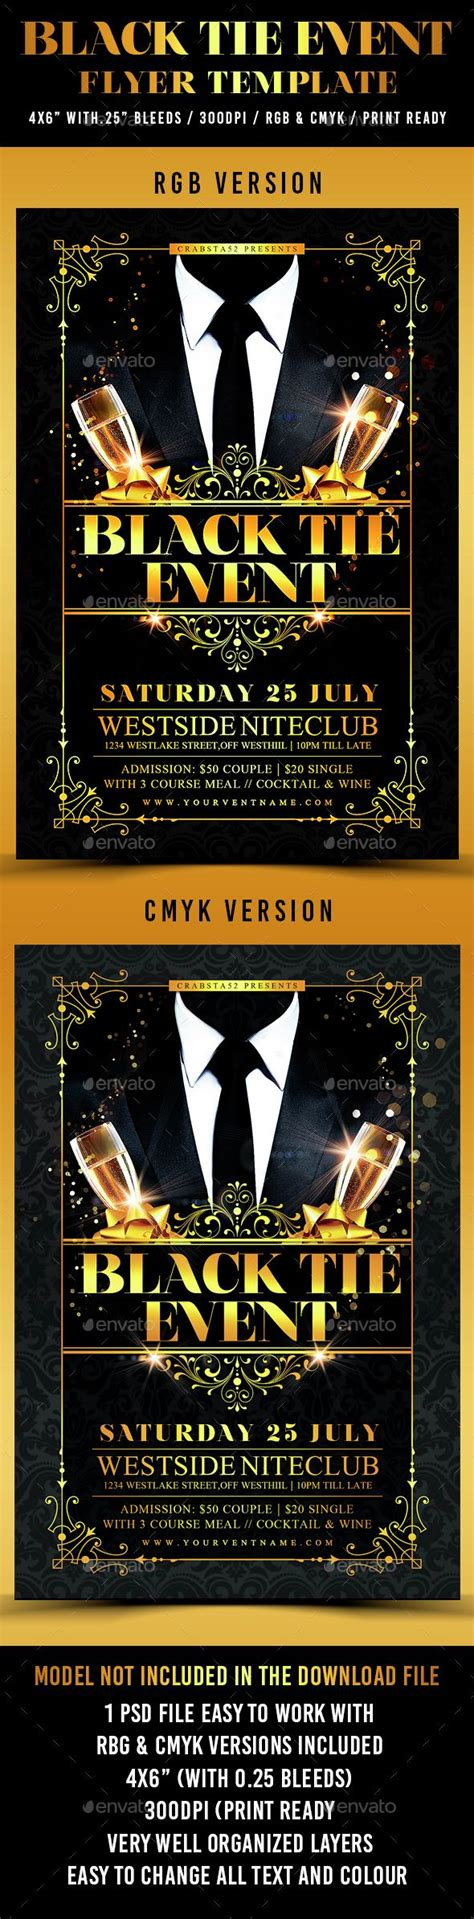 Black Tie Event Flyer